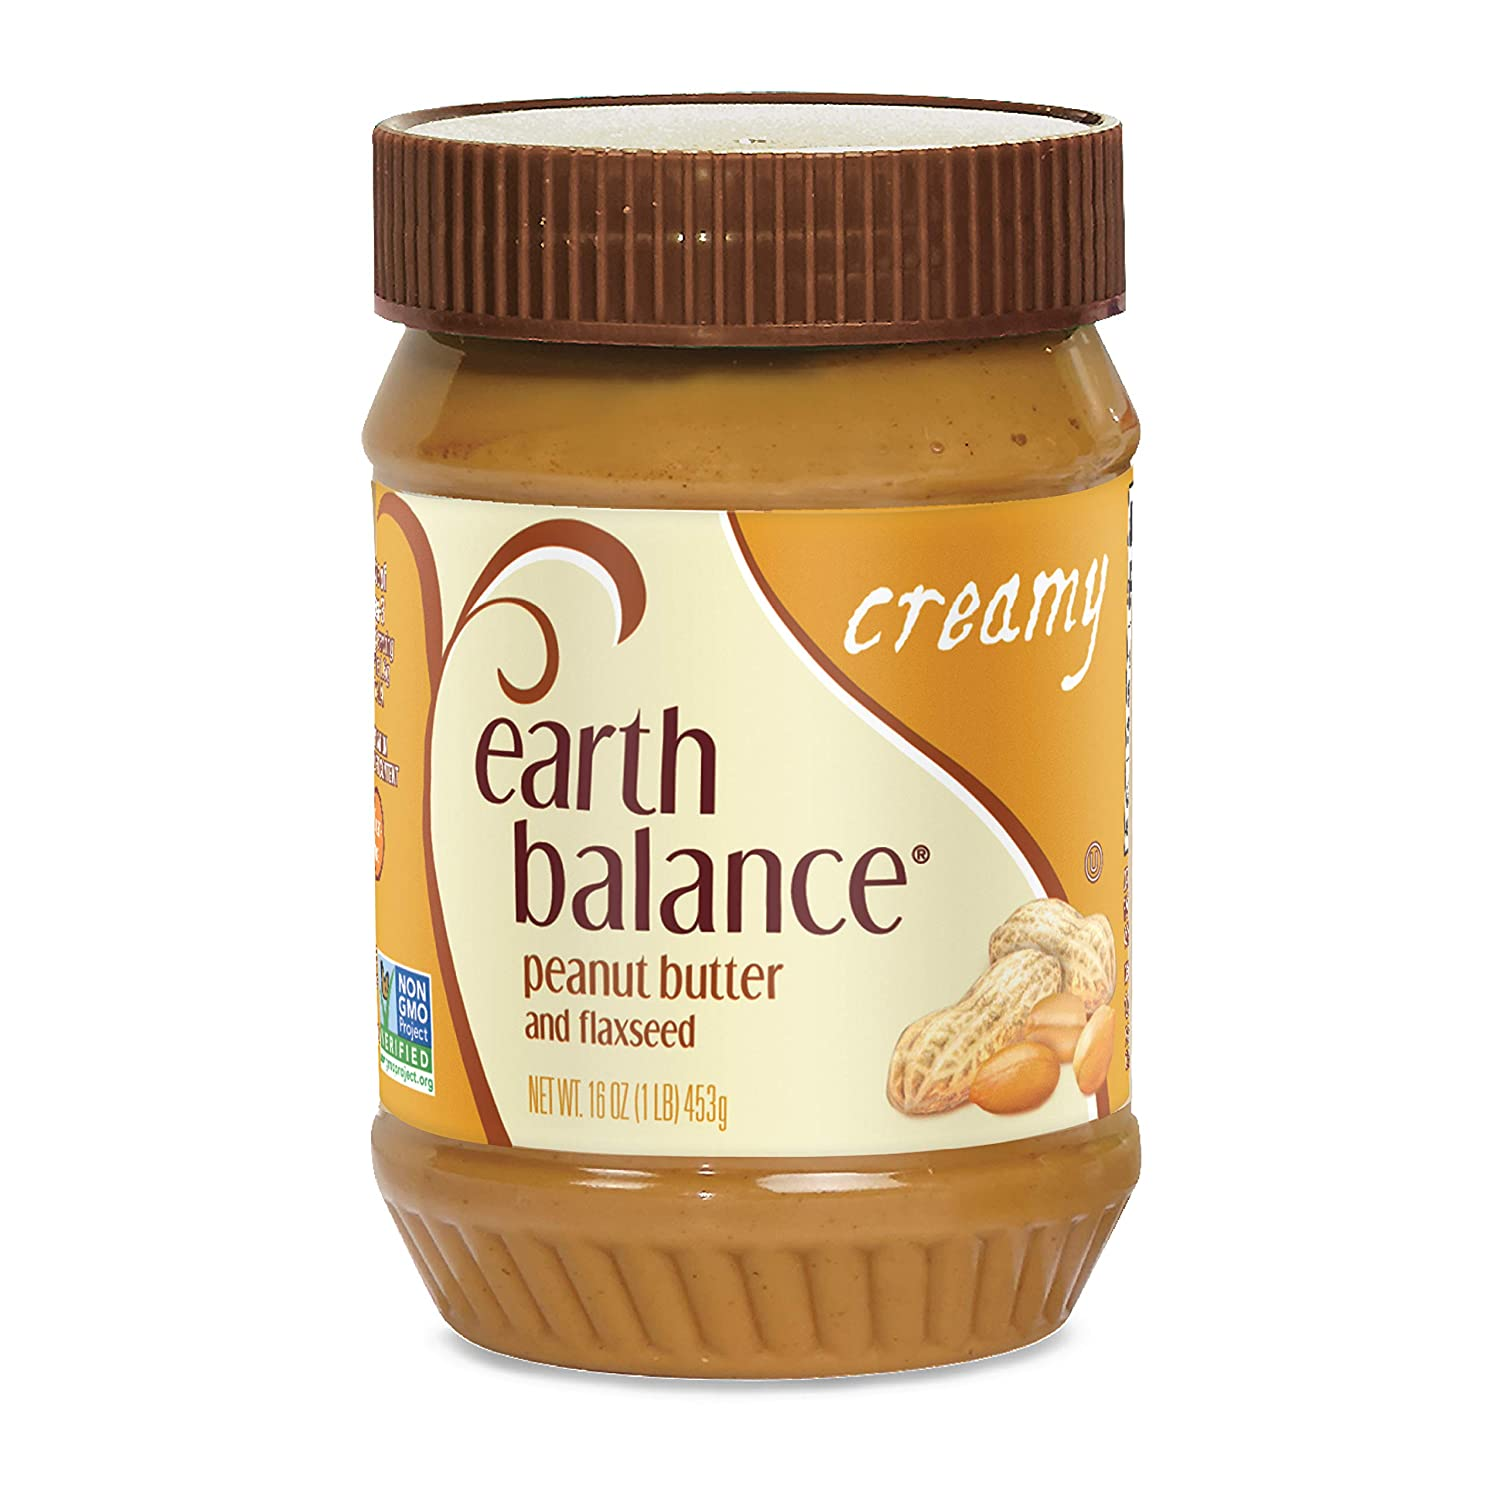 Earth Balance Natural Peanut Butter and Flaxseed Spread, Creamy, Vegan, Non-GMO Project Verified, Gluten Free, 16 Ounce